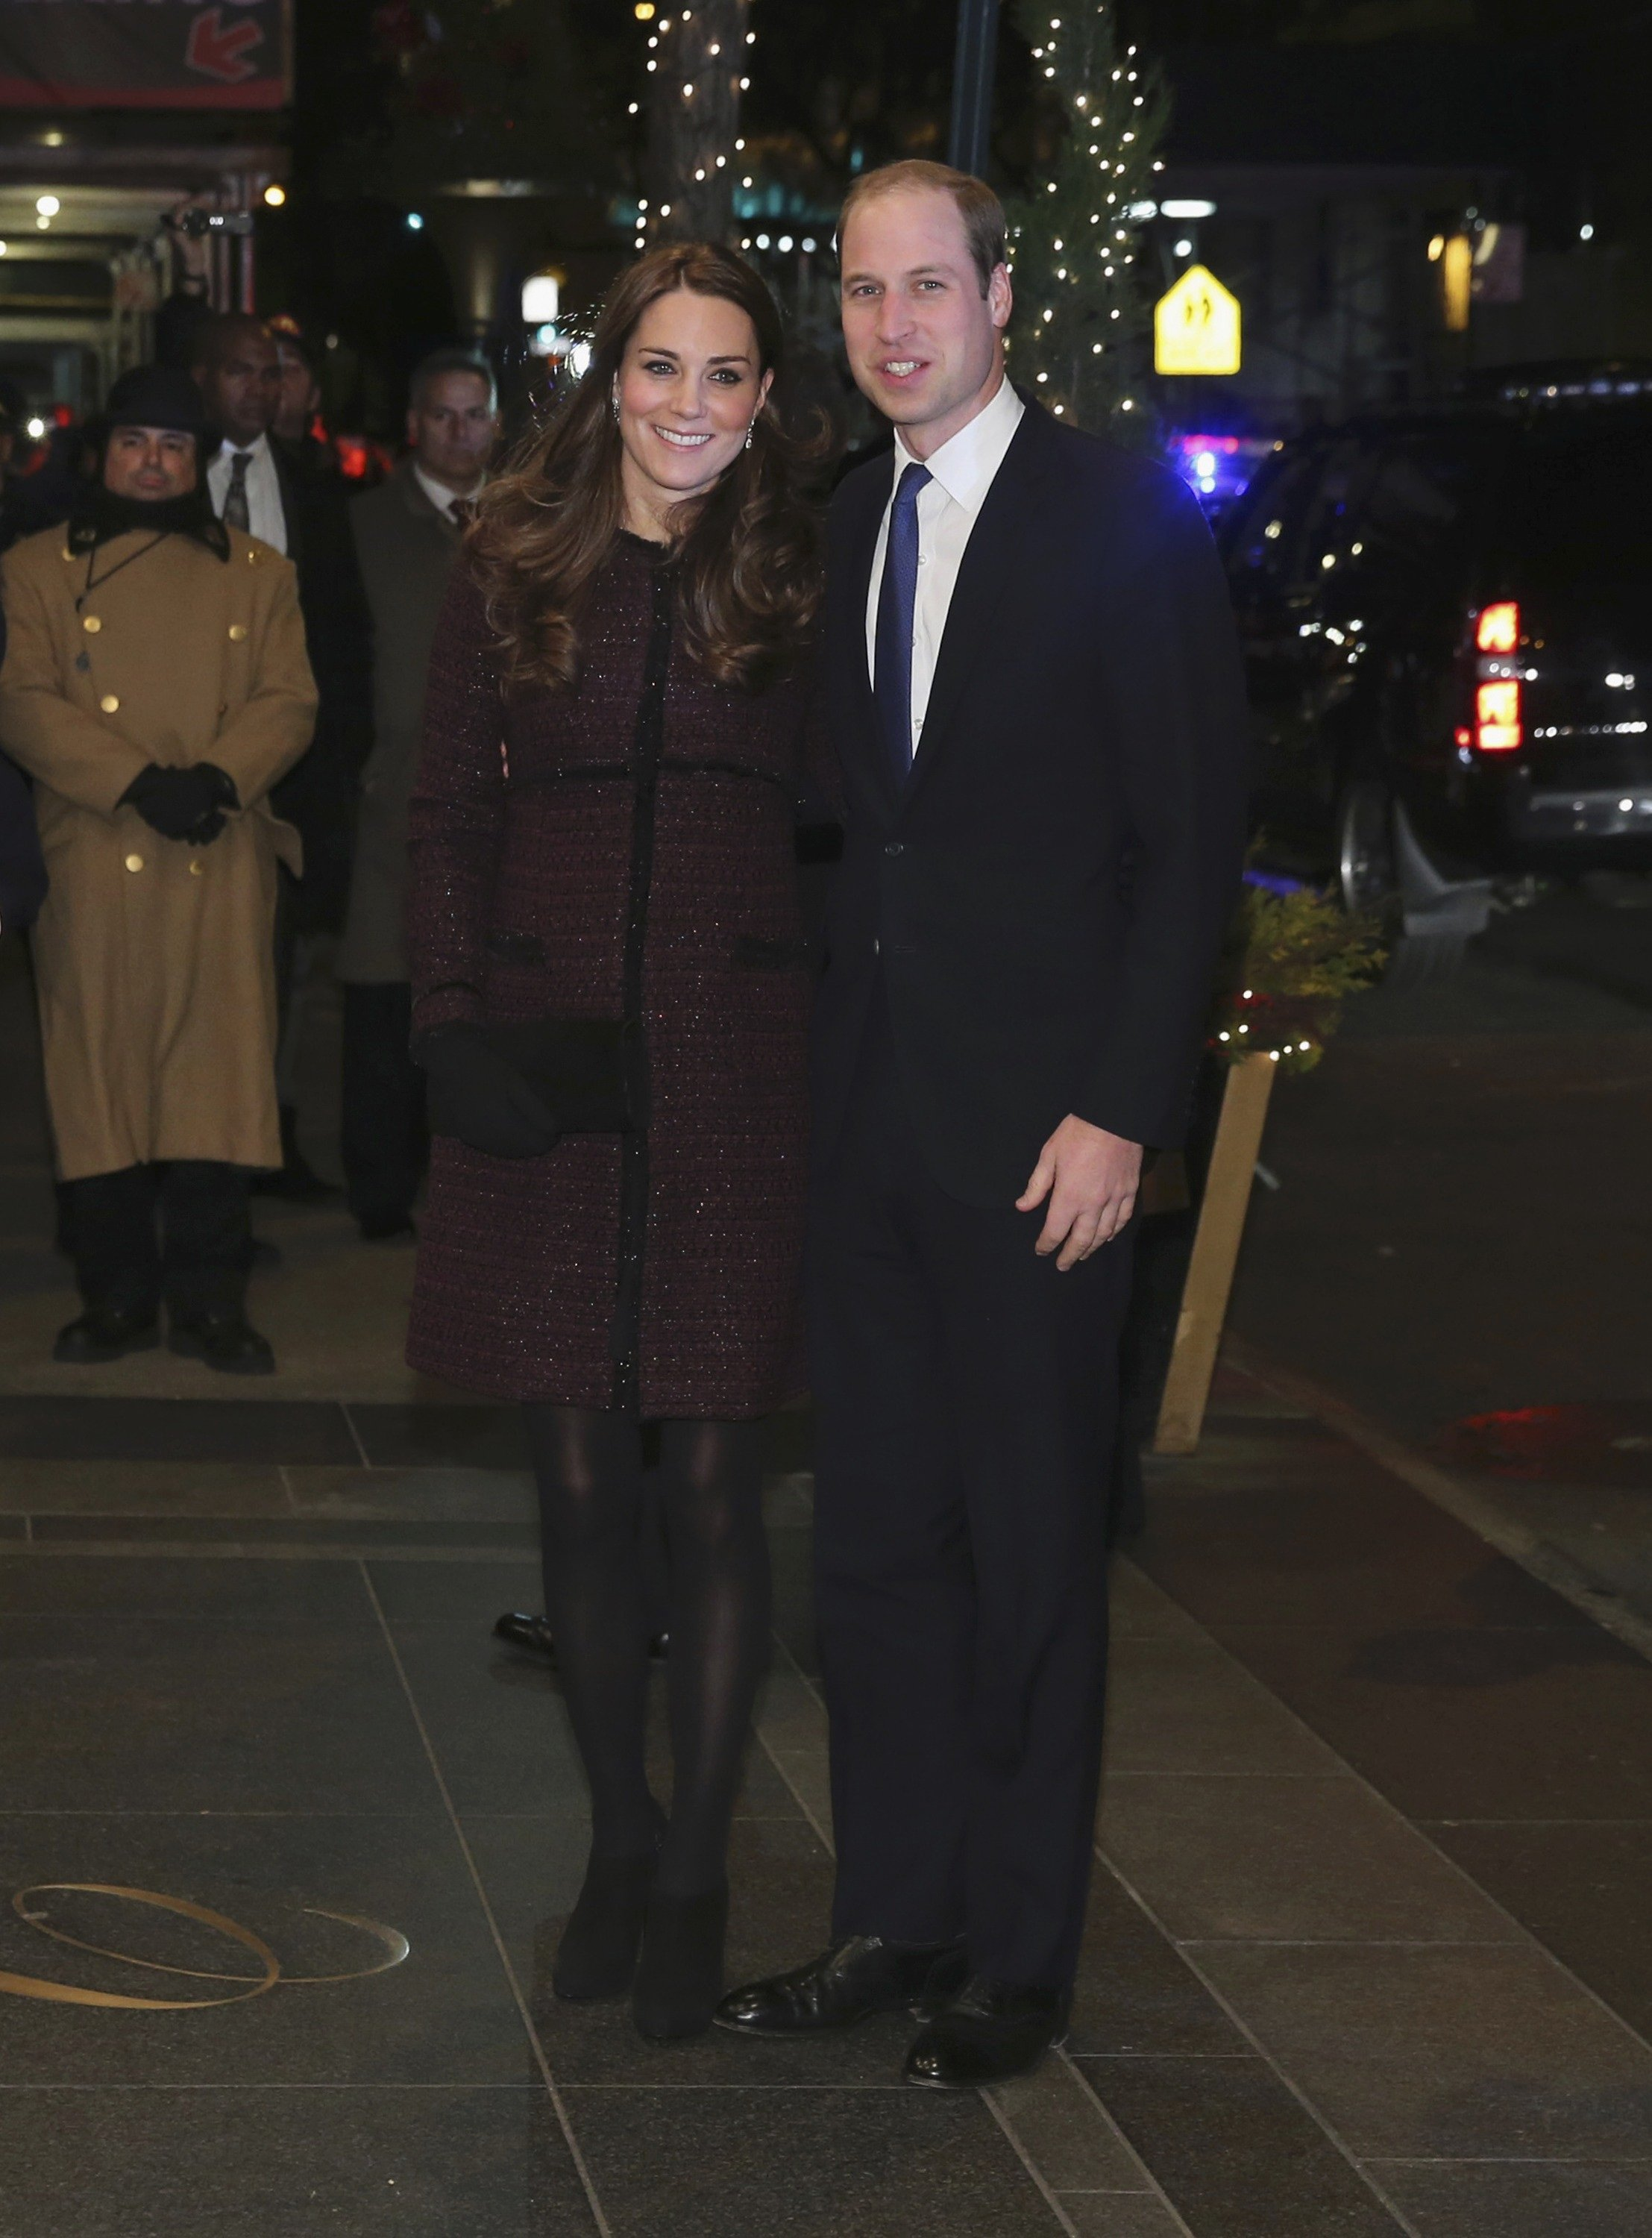 Catherine, Duchess of Cambridge and Britain's Prince William, Duke of Cambridge arrive at the Carlyle hotel in New York on Dec. 7, 2014.